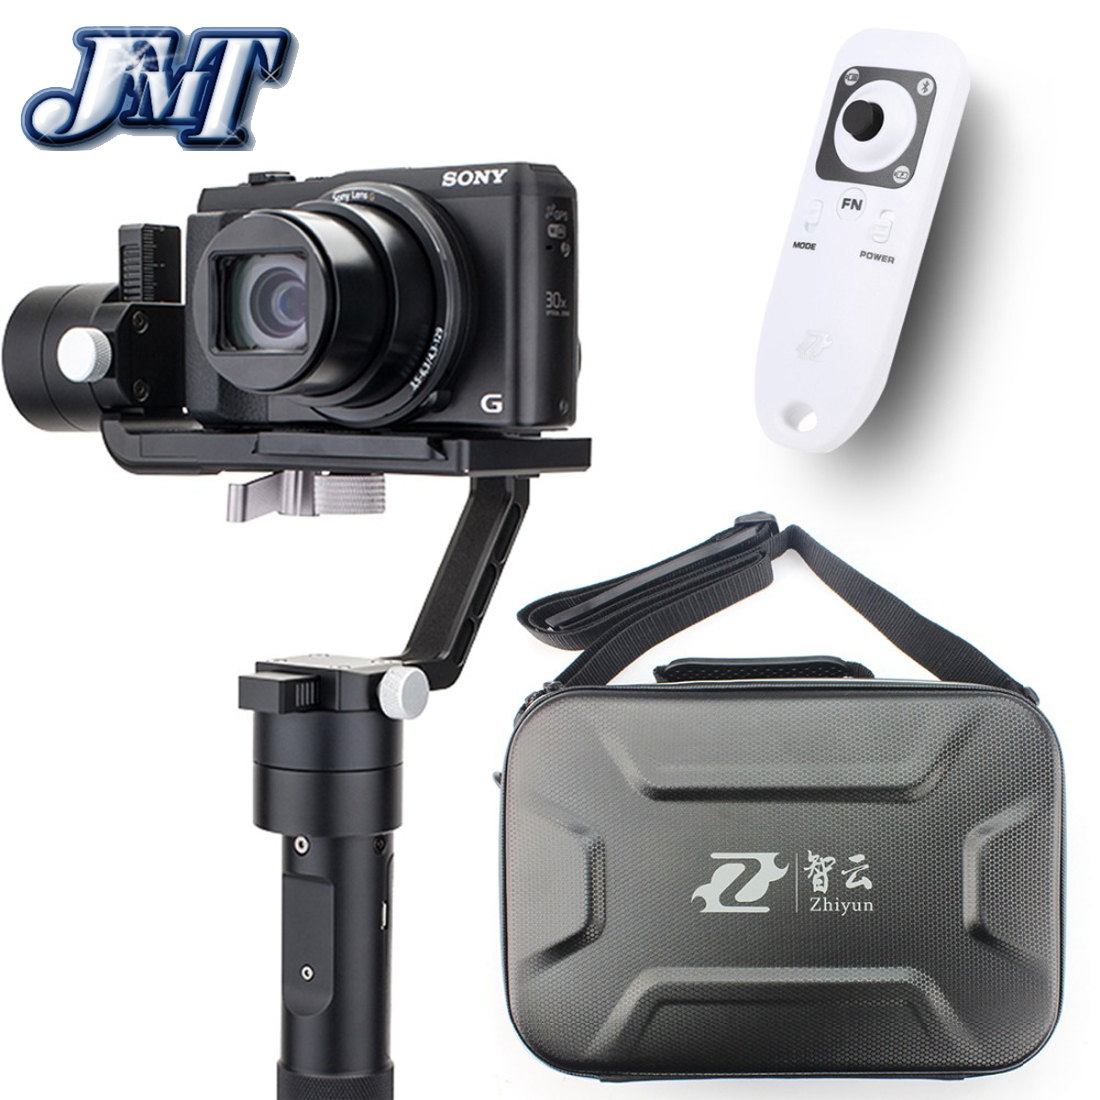 Zhiyun Crane M 3-Axle Handheld Stabilizer Gimbal + Remote Controller B01 +Carry Case for 125g-650g Gopro Camera Smartphone afi vs 3sd handheld 3 axle brushless handheld steady gimbal stabilizer for canon 5d 6d 7d for sony for gh4 dslr q20185